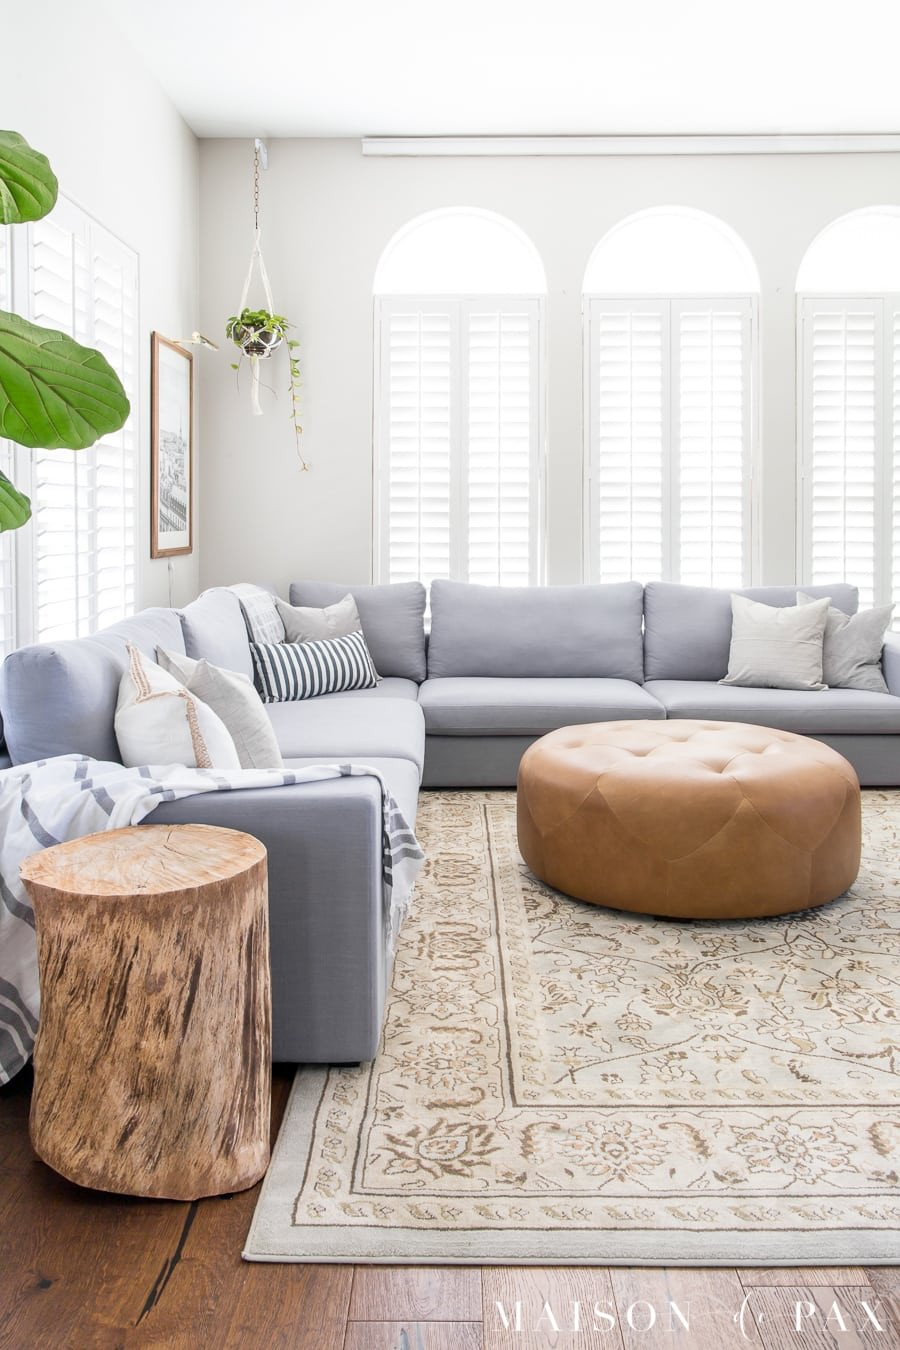 Small Living Room Ideas Sectionals Best Of How to Decorate A Living Room with A Sectional Maison De Pax